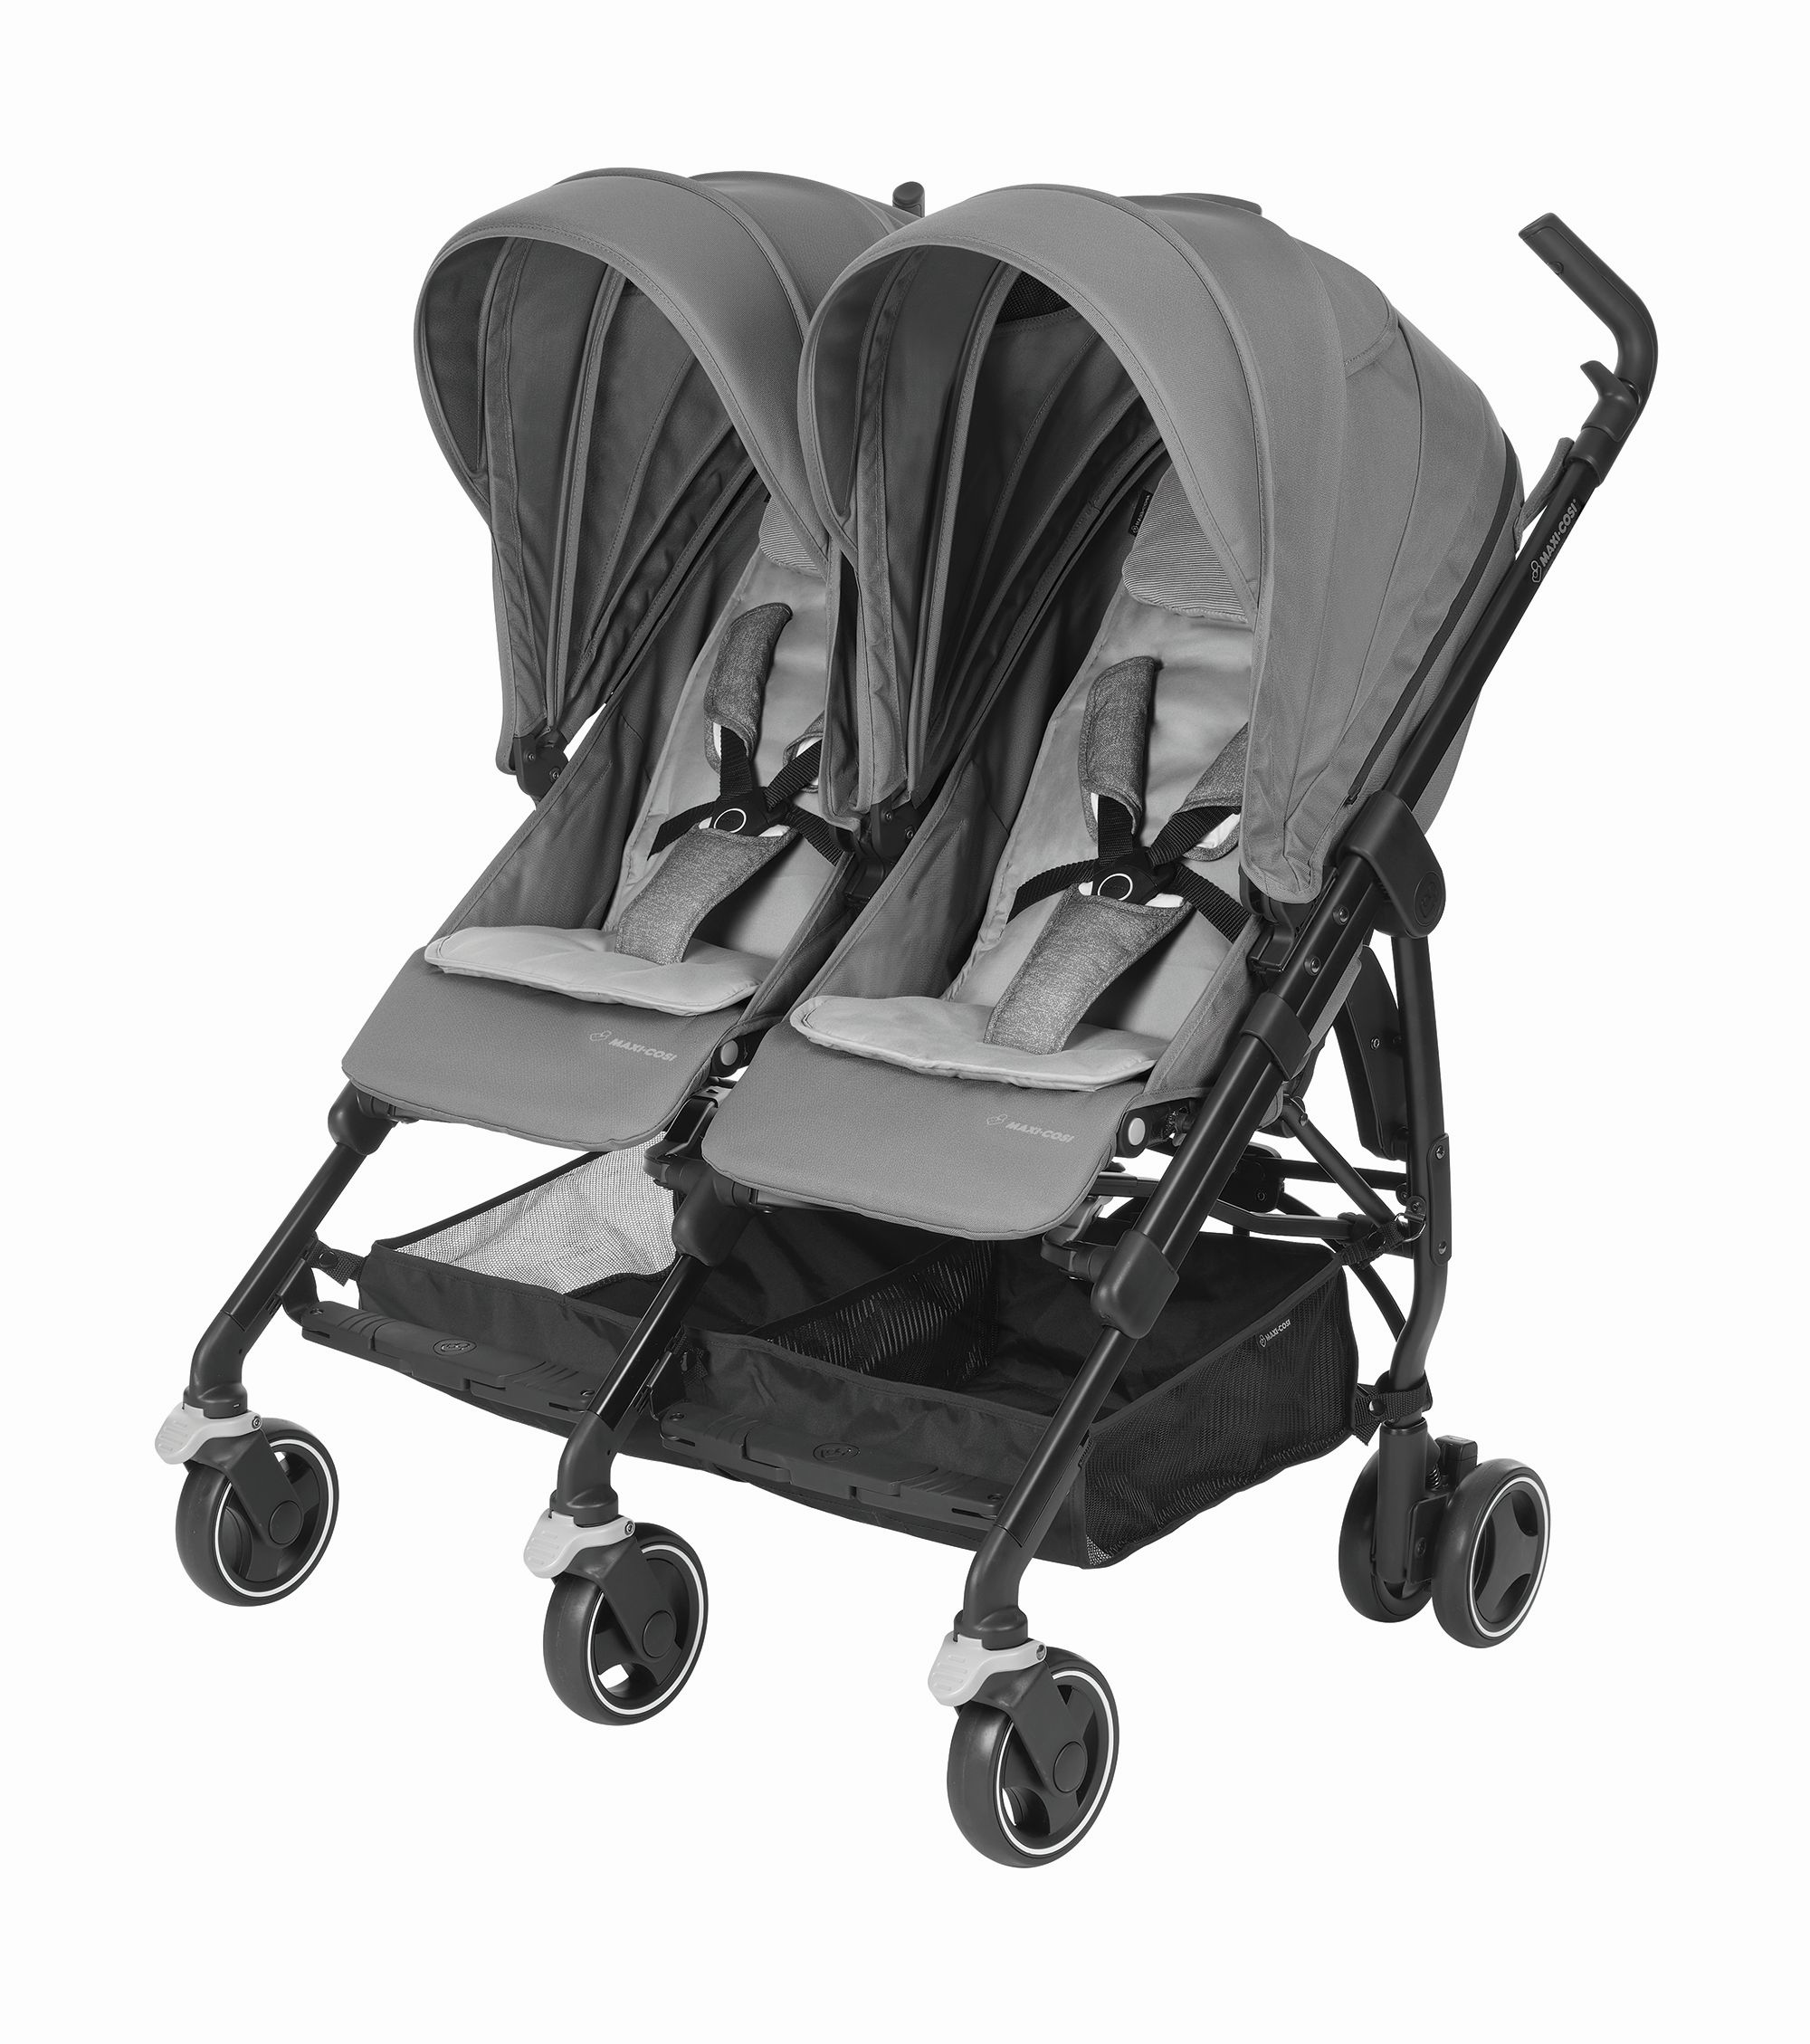 maxi cosi buggy dana for2 buy at kidsroom strollers. Black Bedroom Furniture Sets. Home Design Ideas